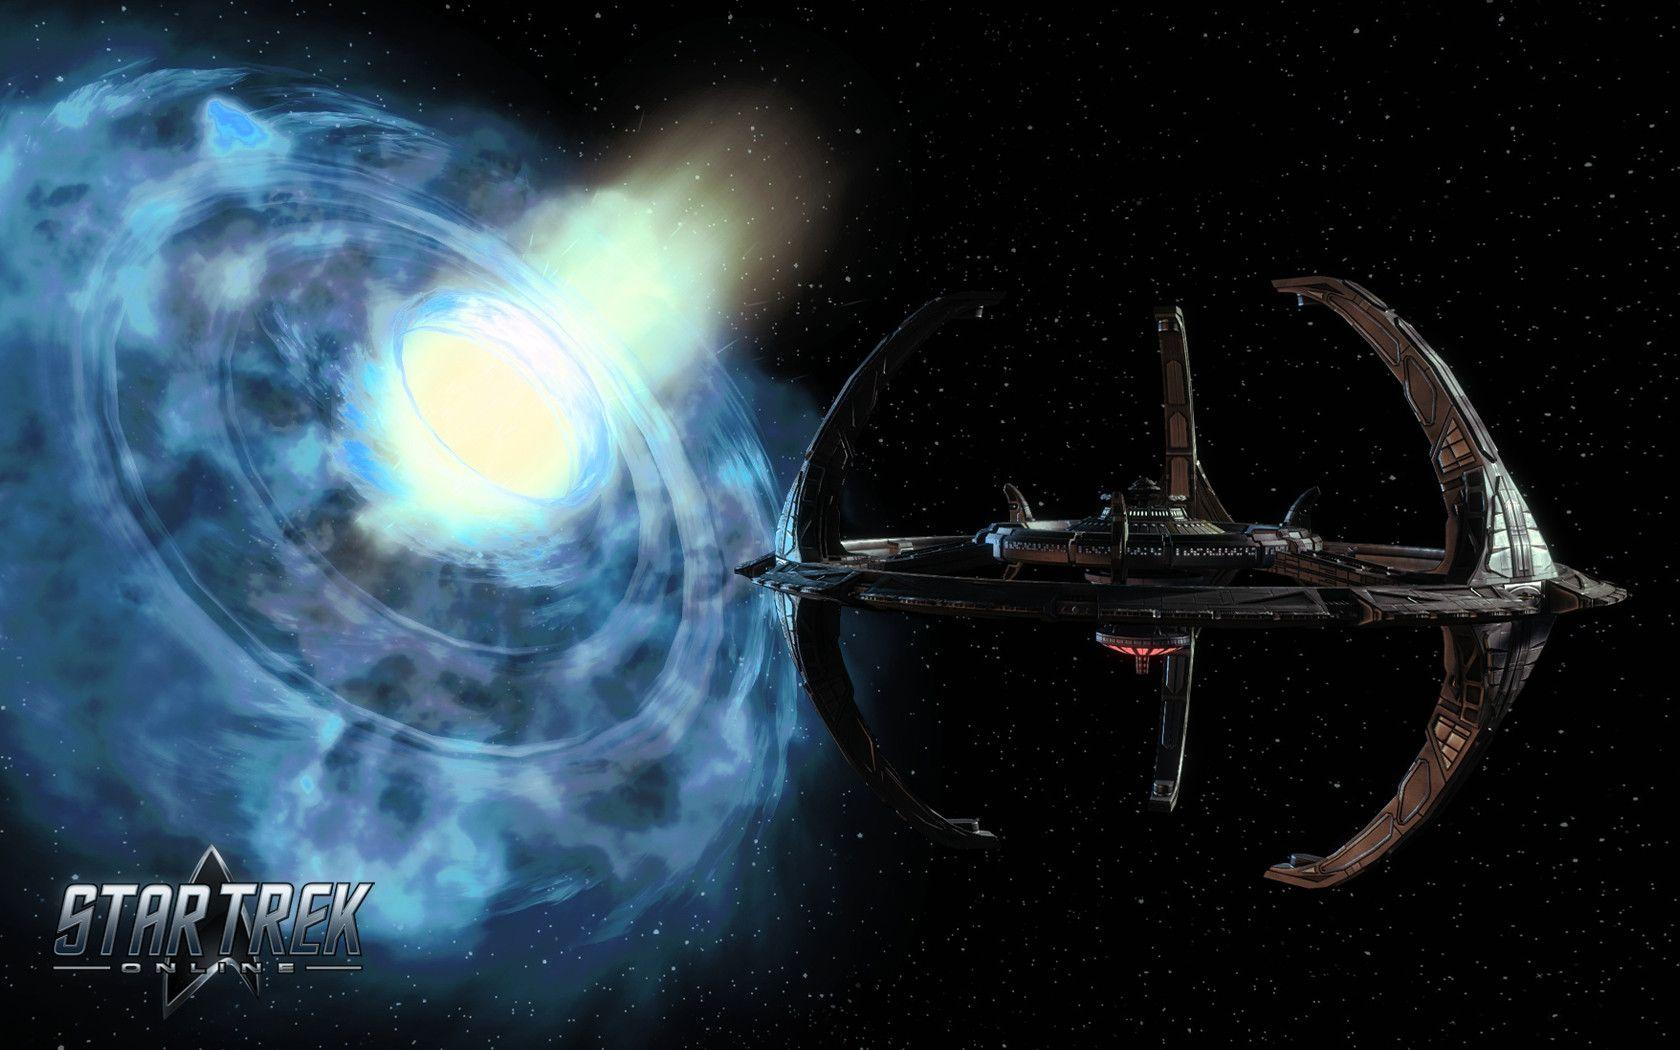 Star Trek Deep Space Nine Wallpapers 1680x1050